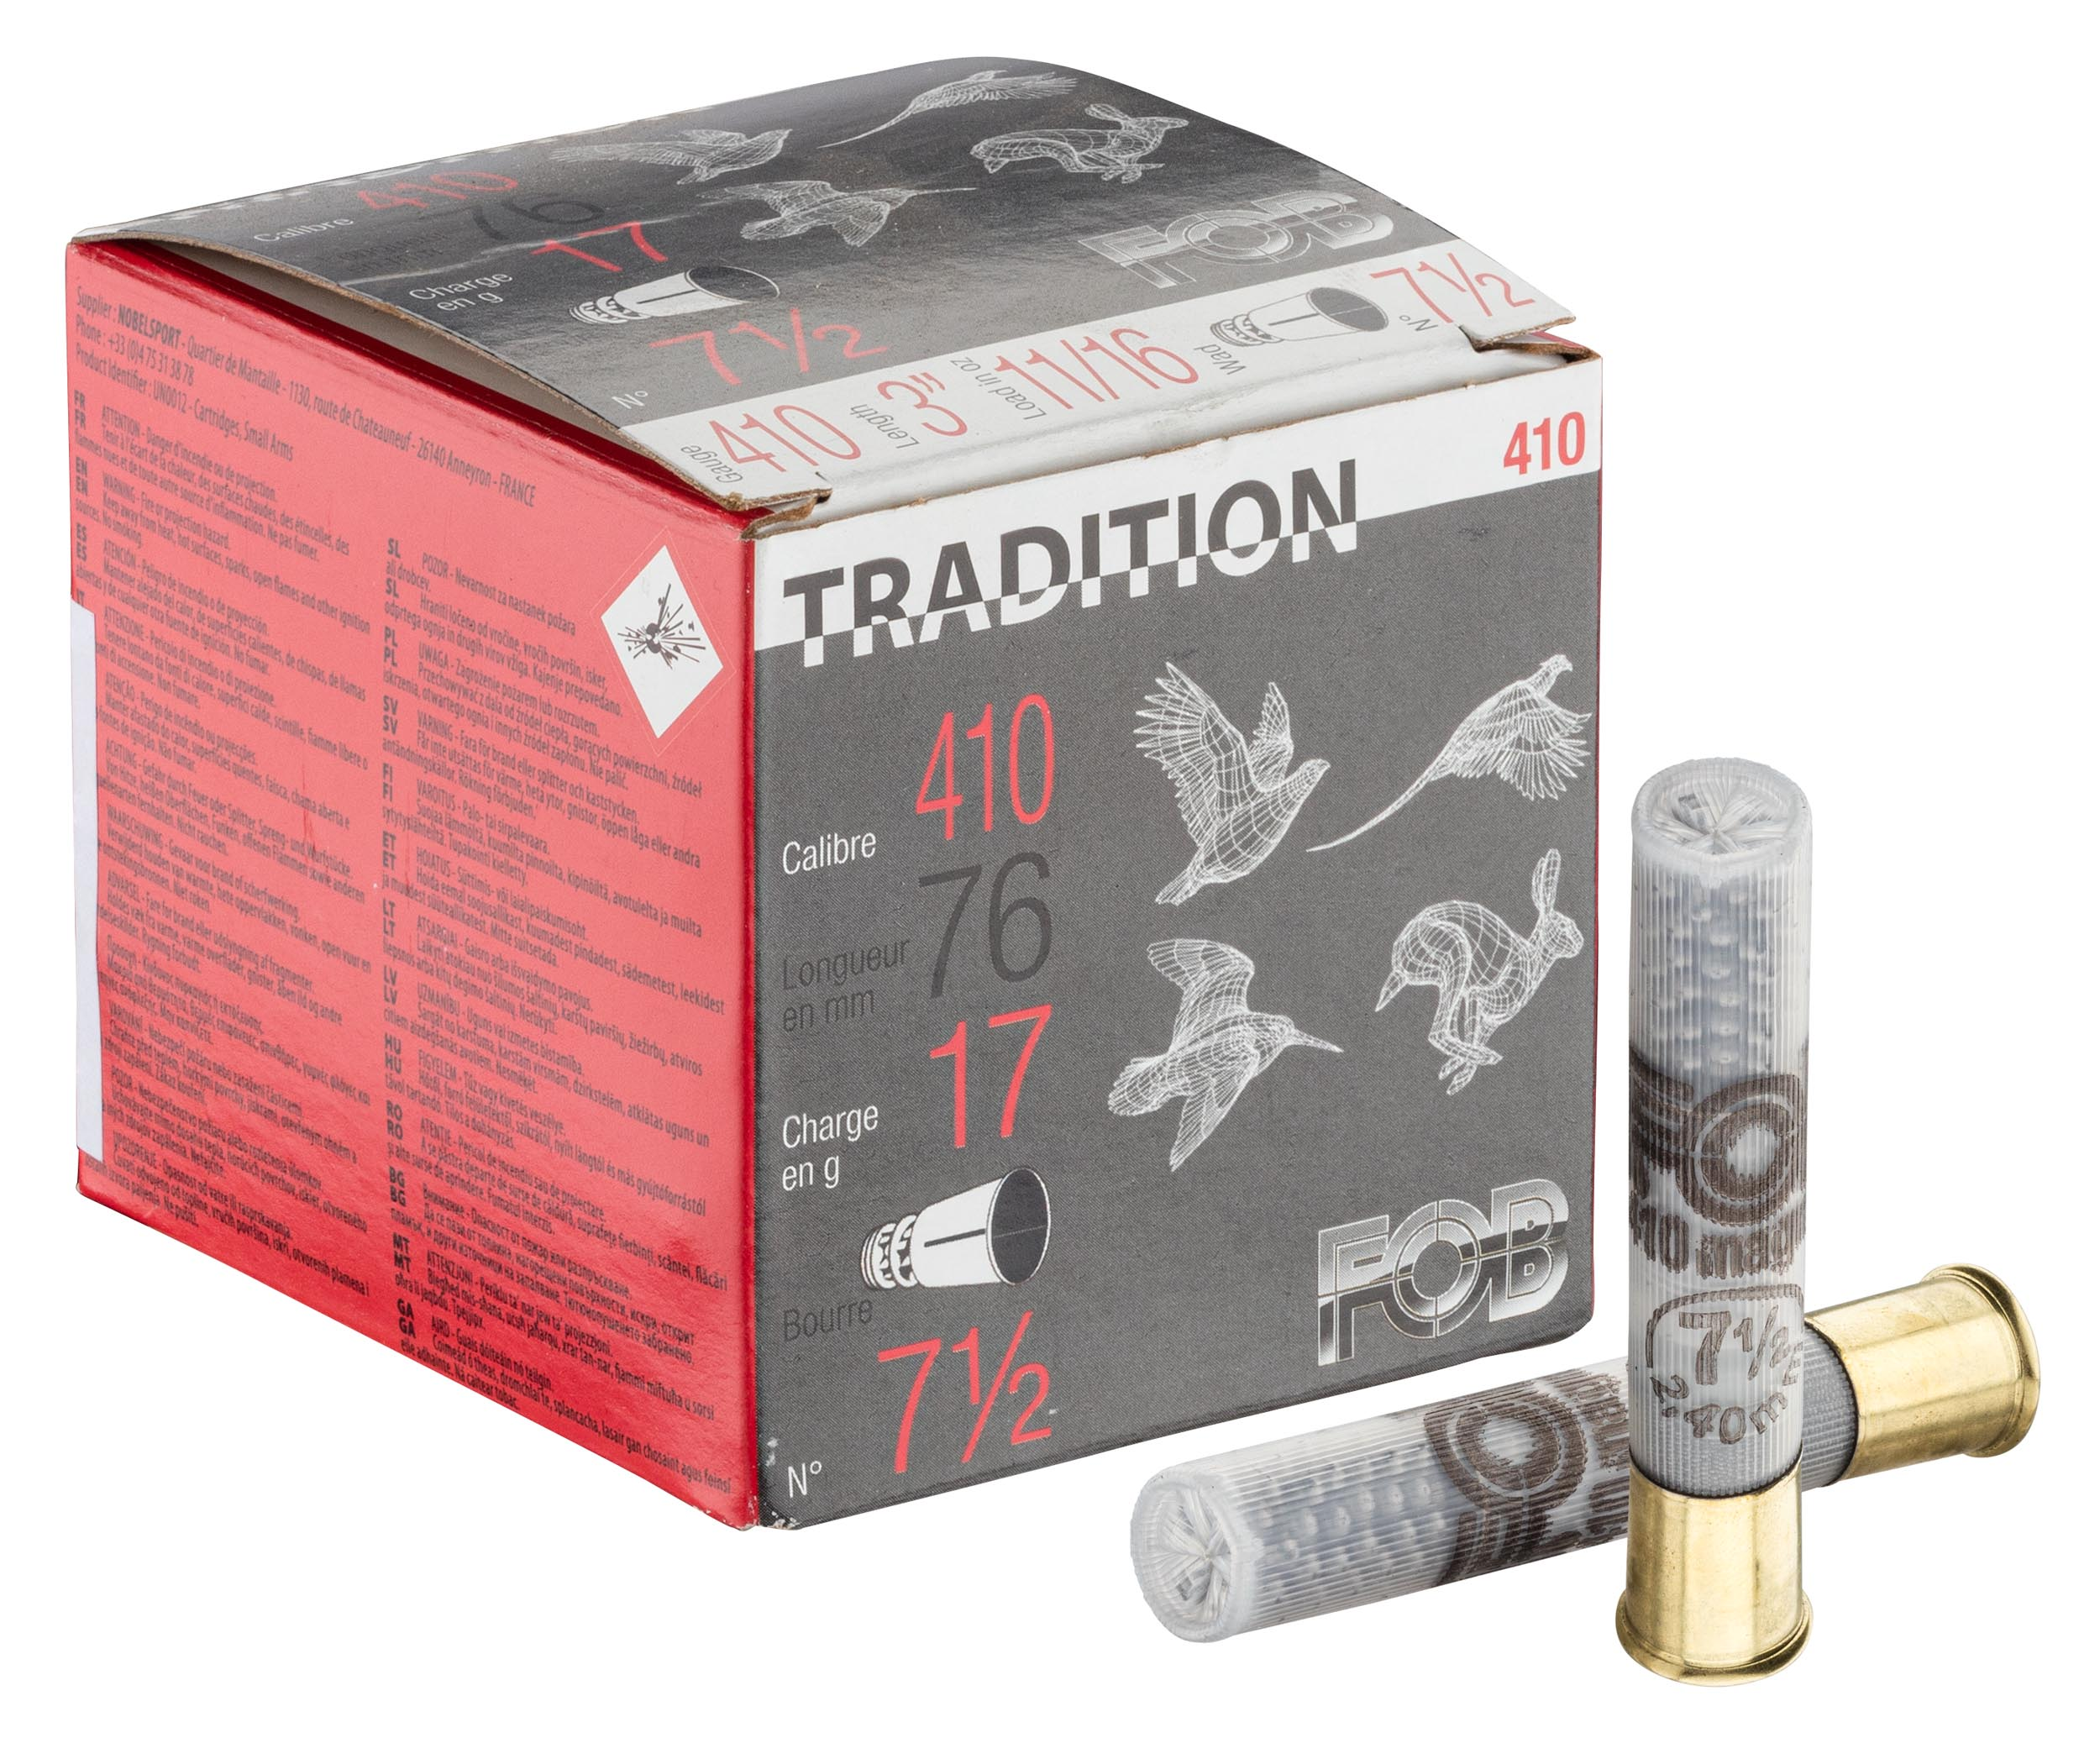 MF1060-6 Fob Tradition Cartridges - Cal. 410 Magnum - MF1060